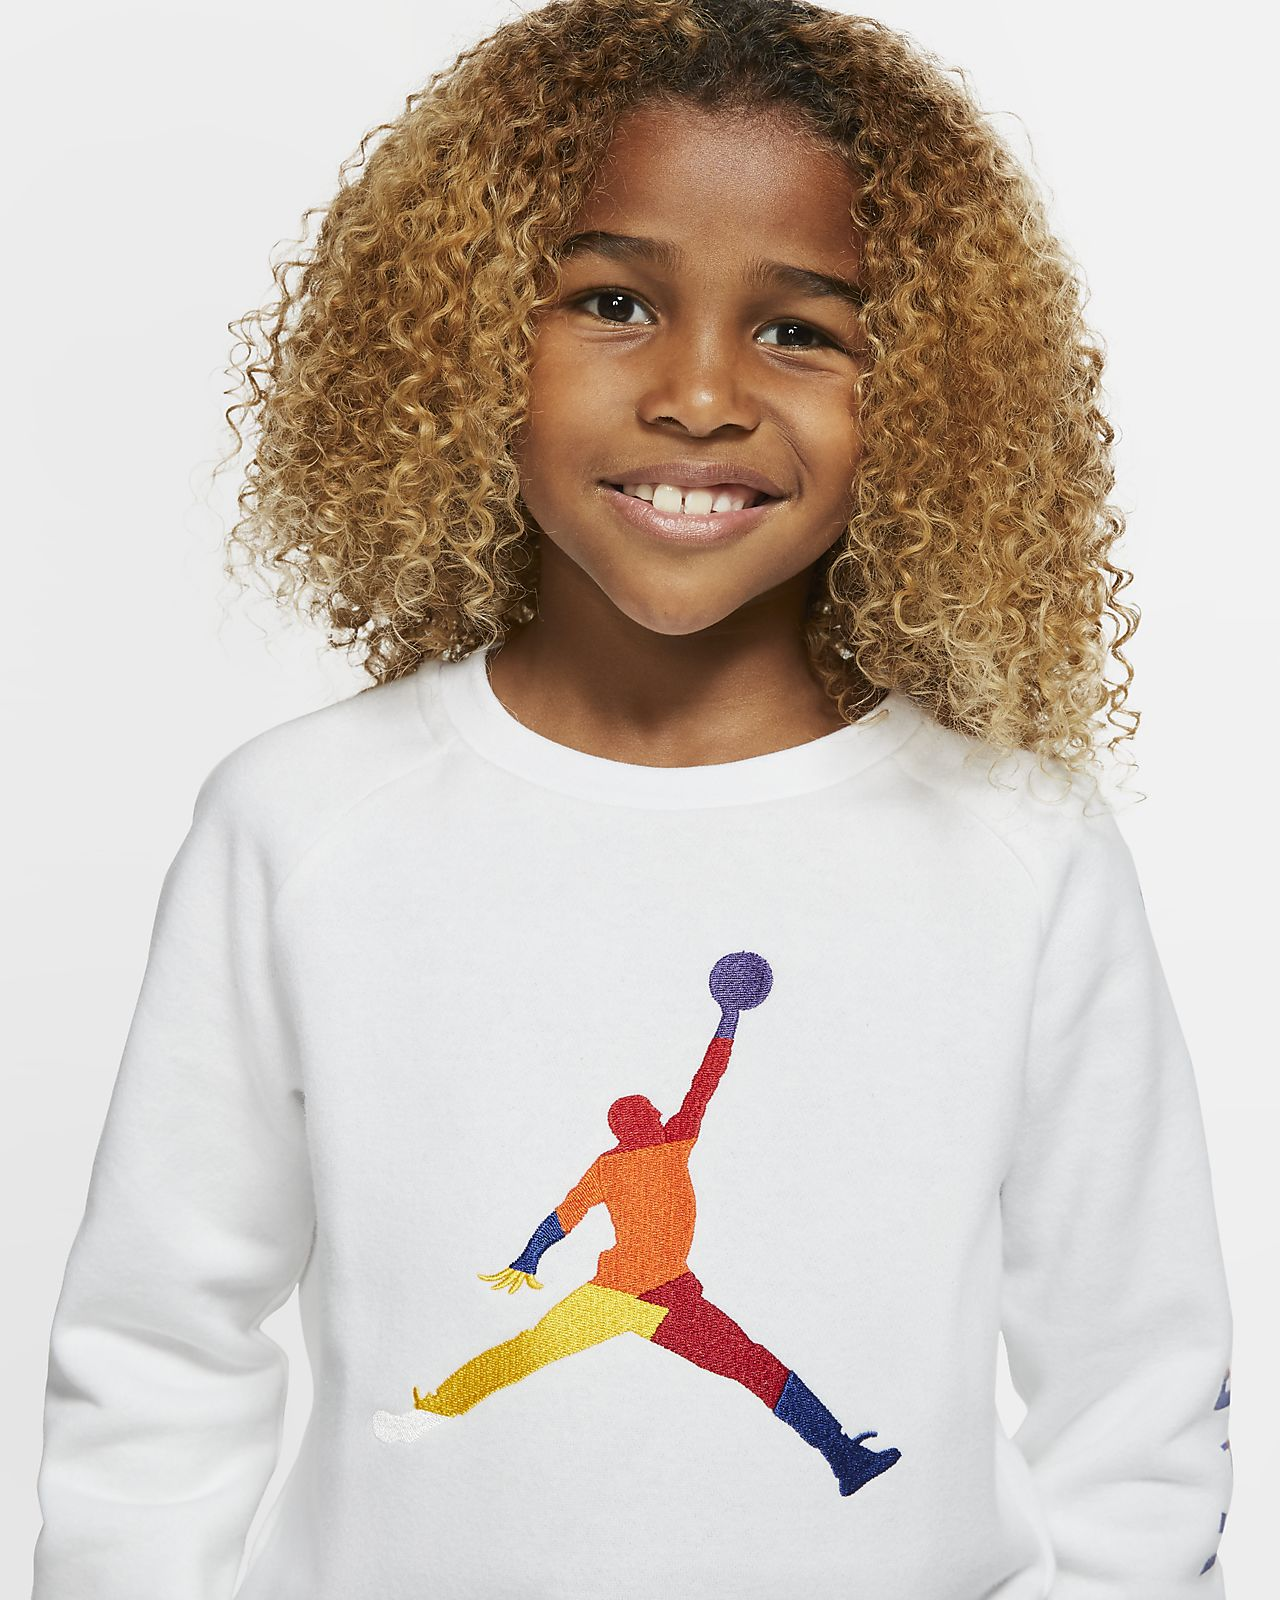 Air Jordan Fleece Rundhalsshirt für jüngere Kinder